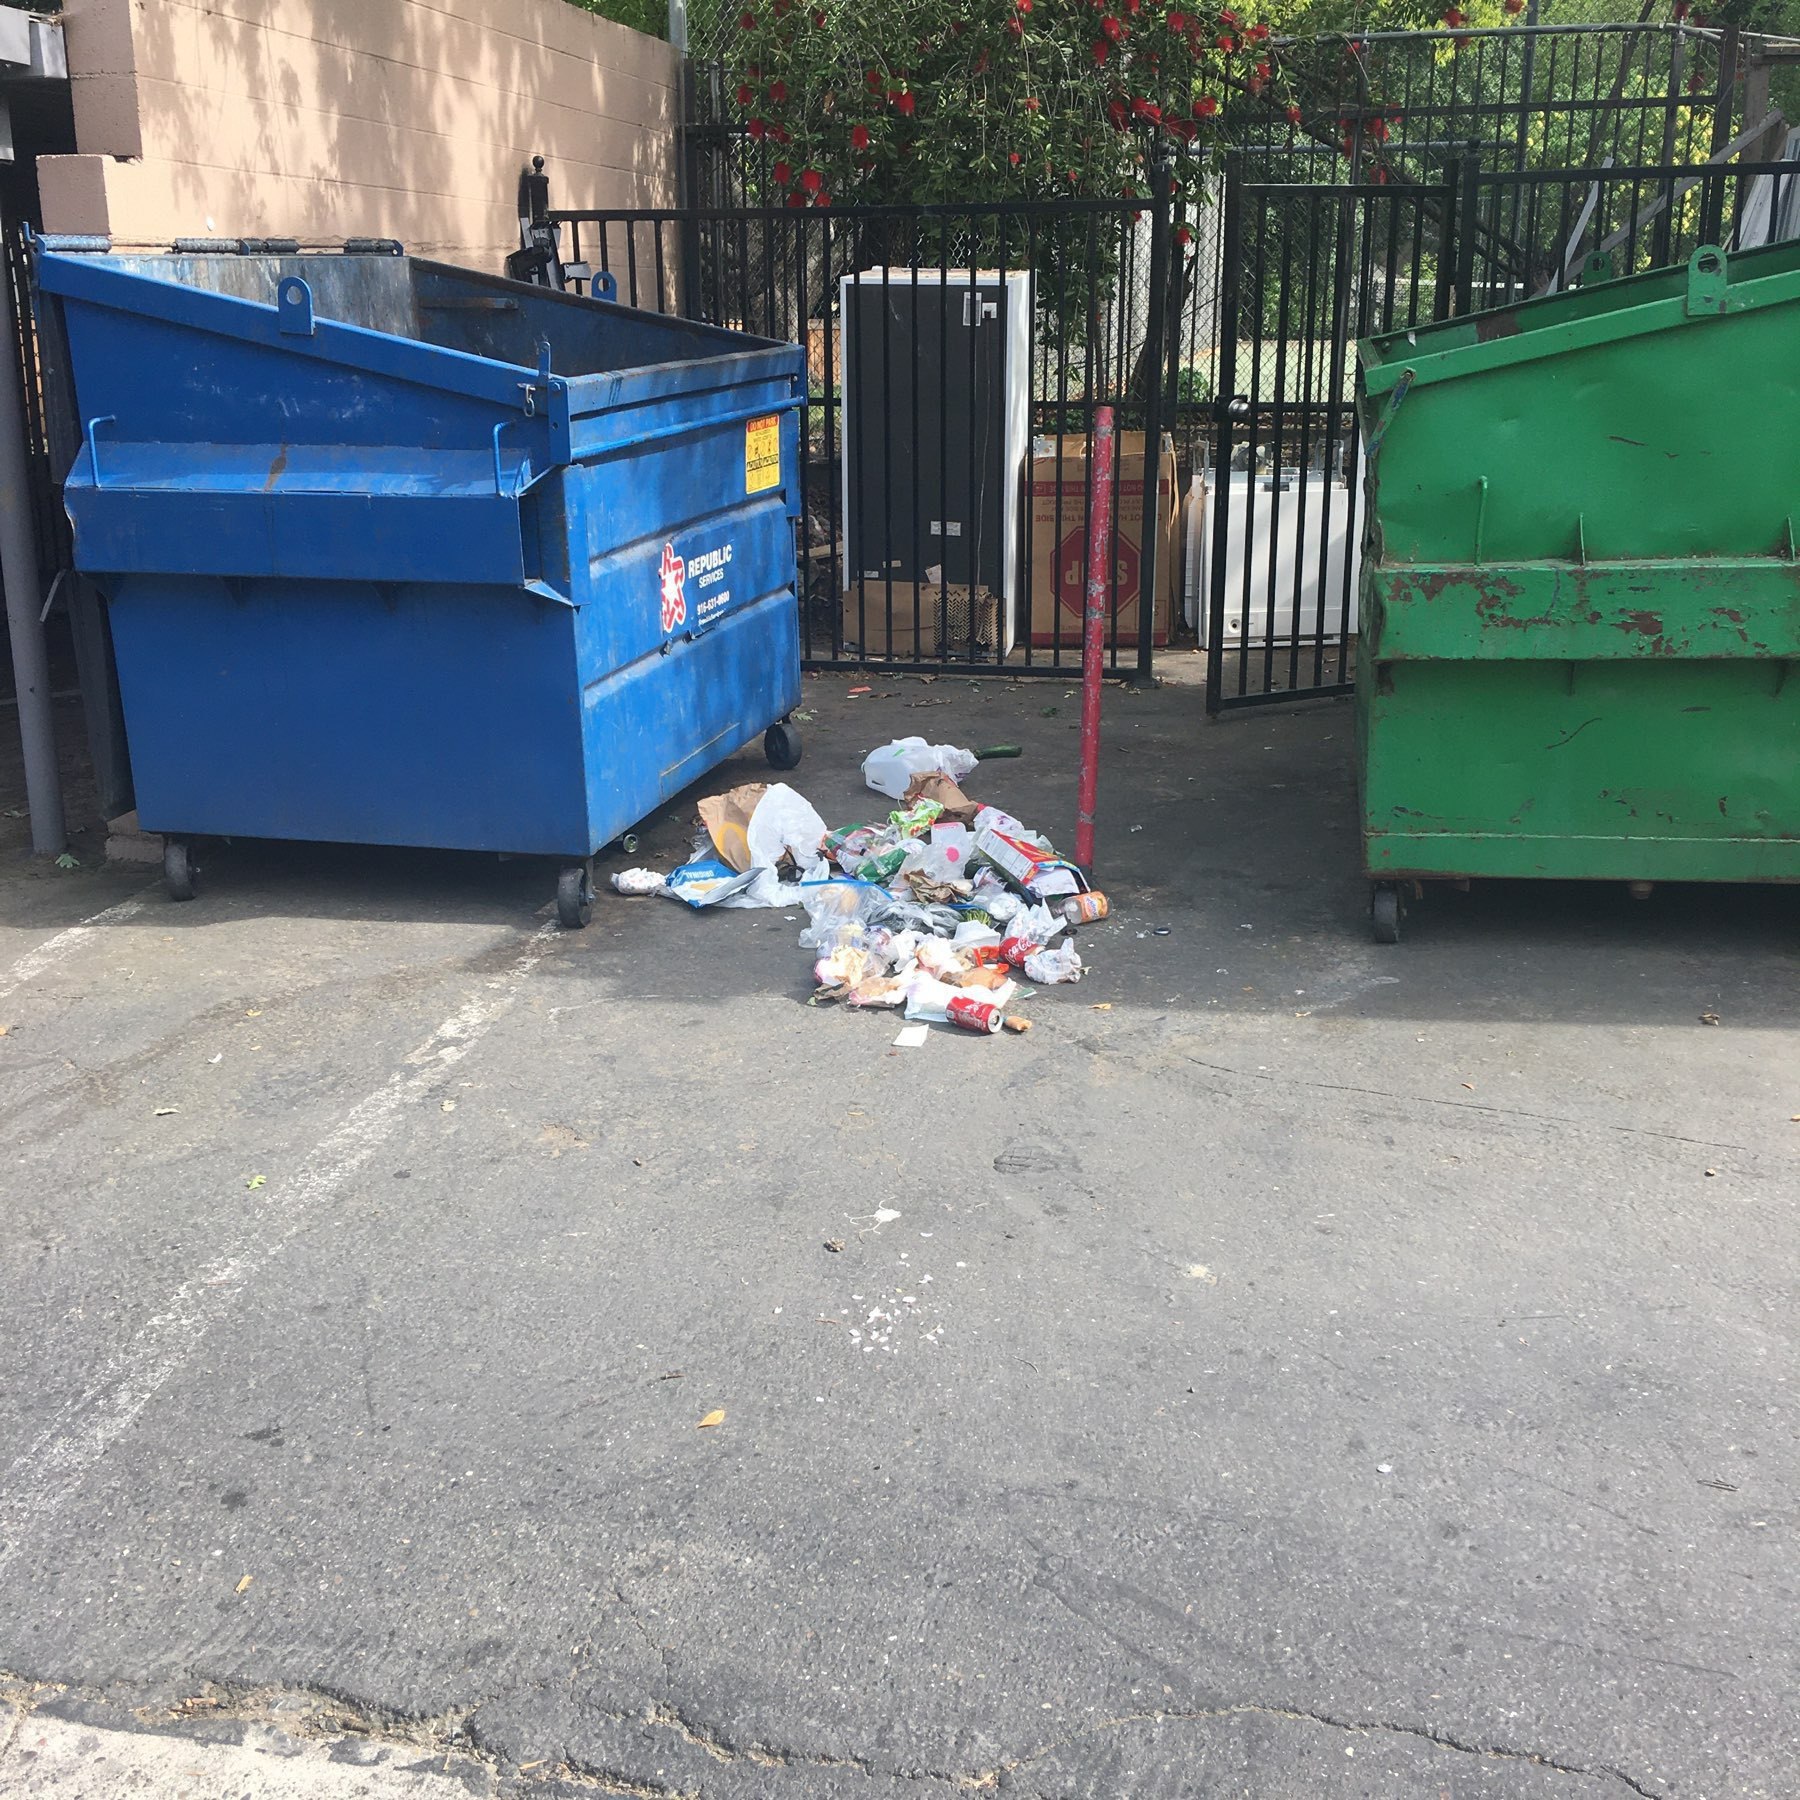 Garbage next to the dumpster.